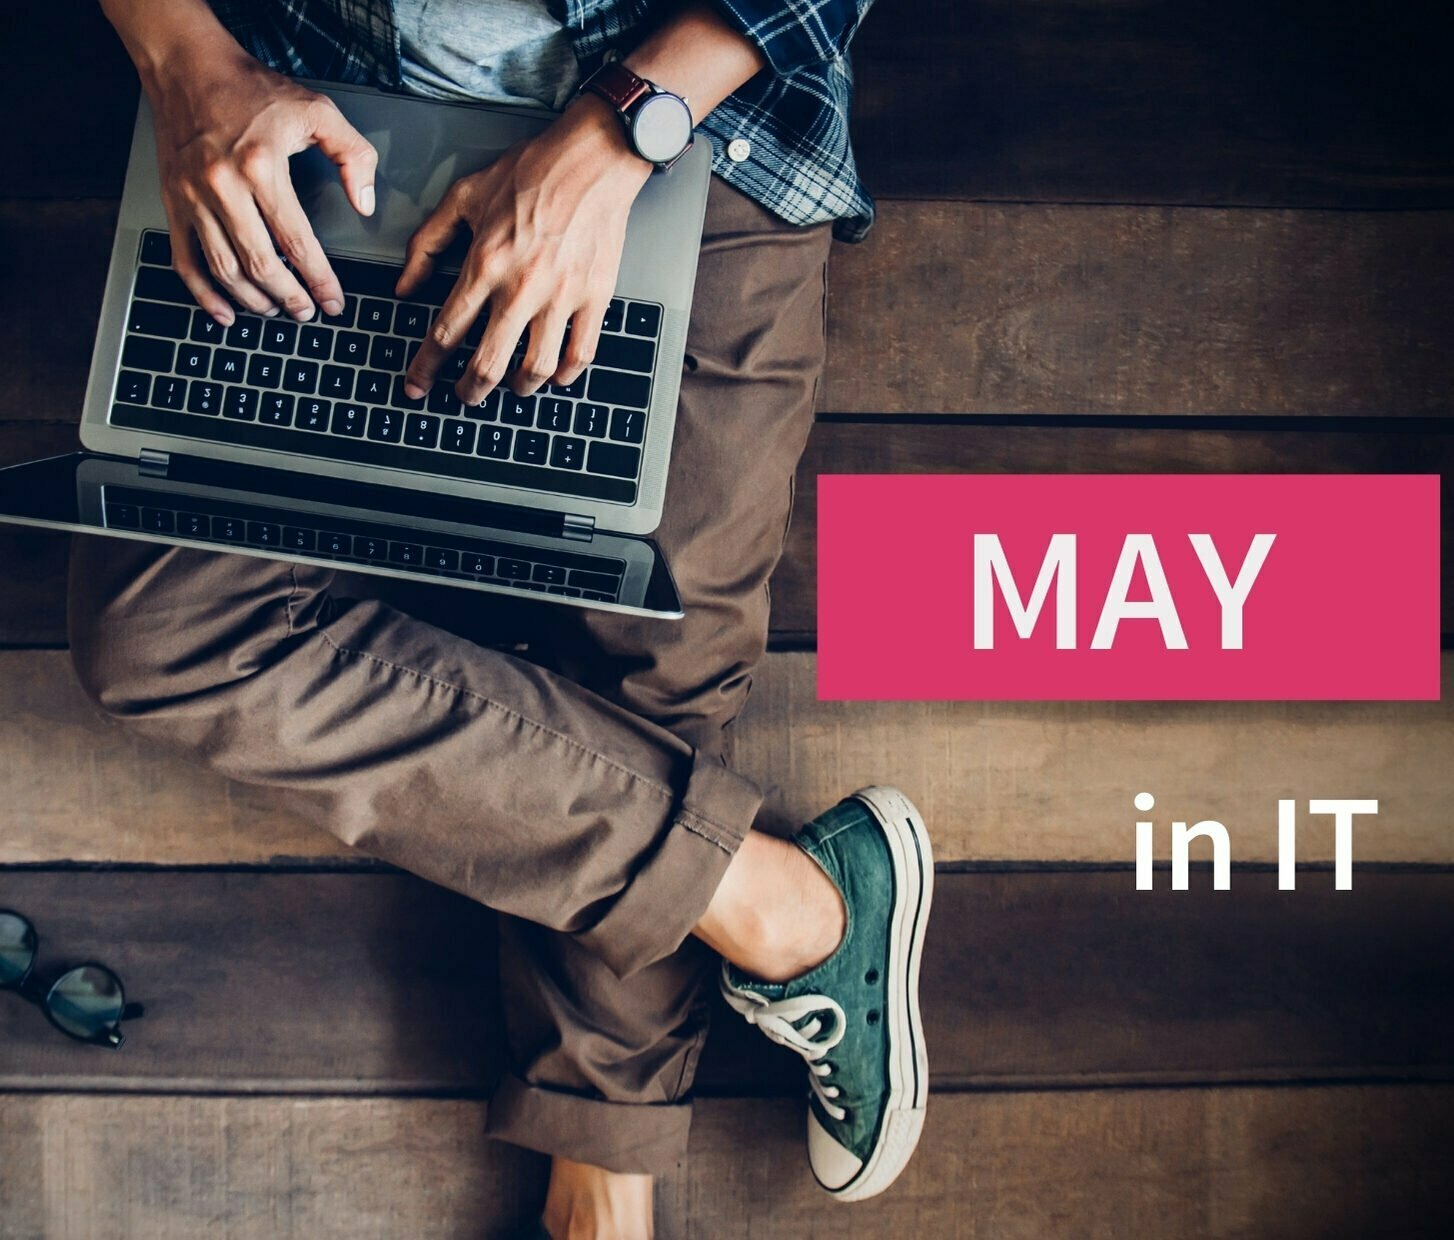 May online events in IT